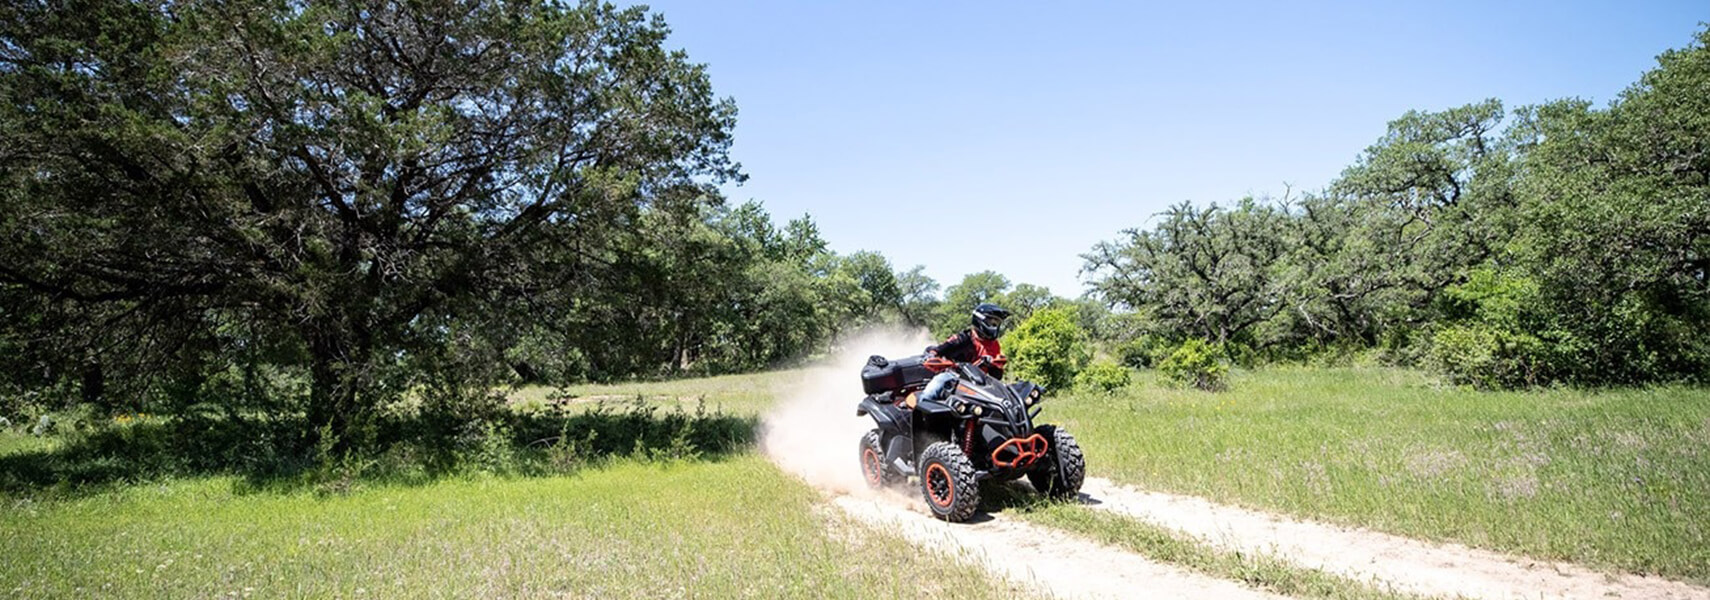 Can-Am ATV - 2020 RENEGADE X XC 1000 T